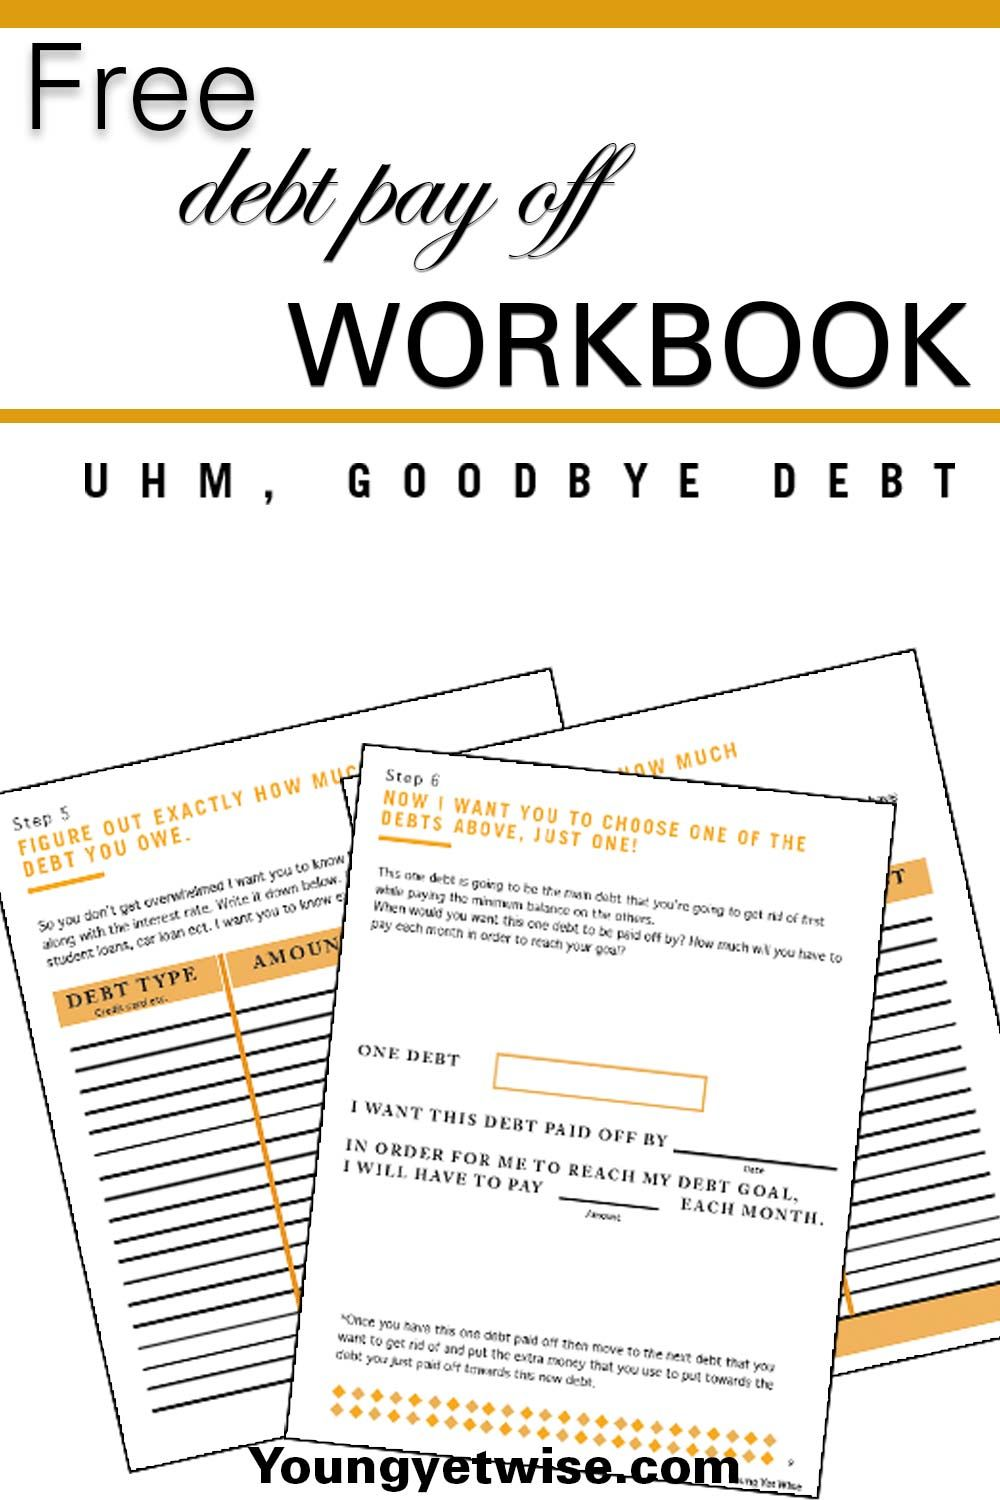 Workbooks money workbook : Free debt pay off workbook printable: I know your goal is to be ...